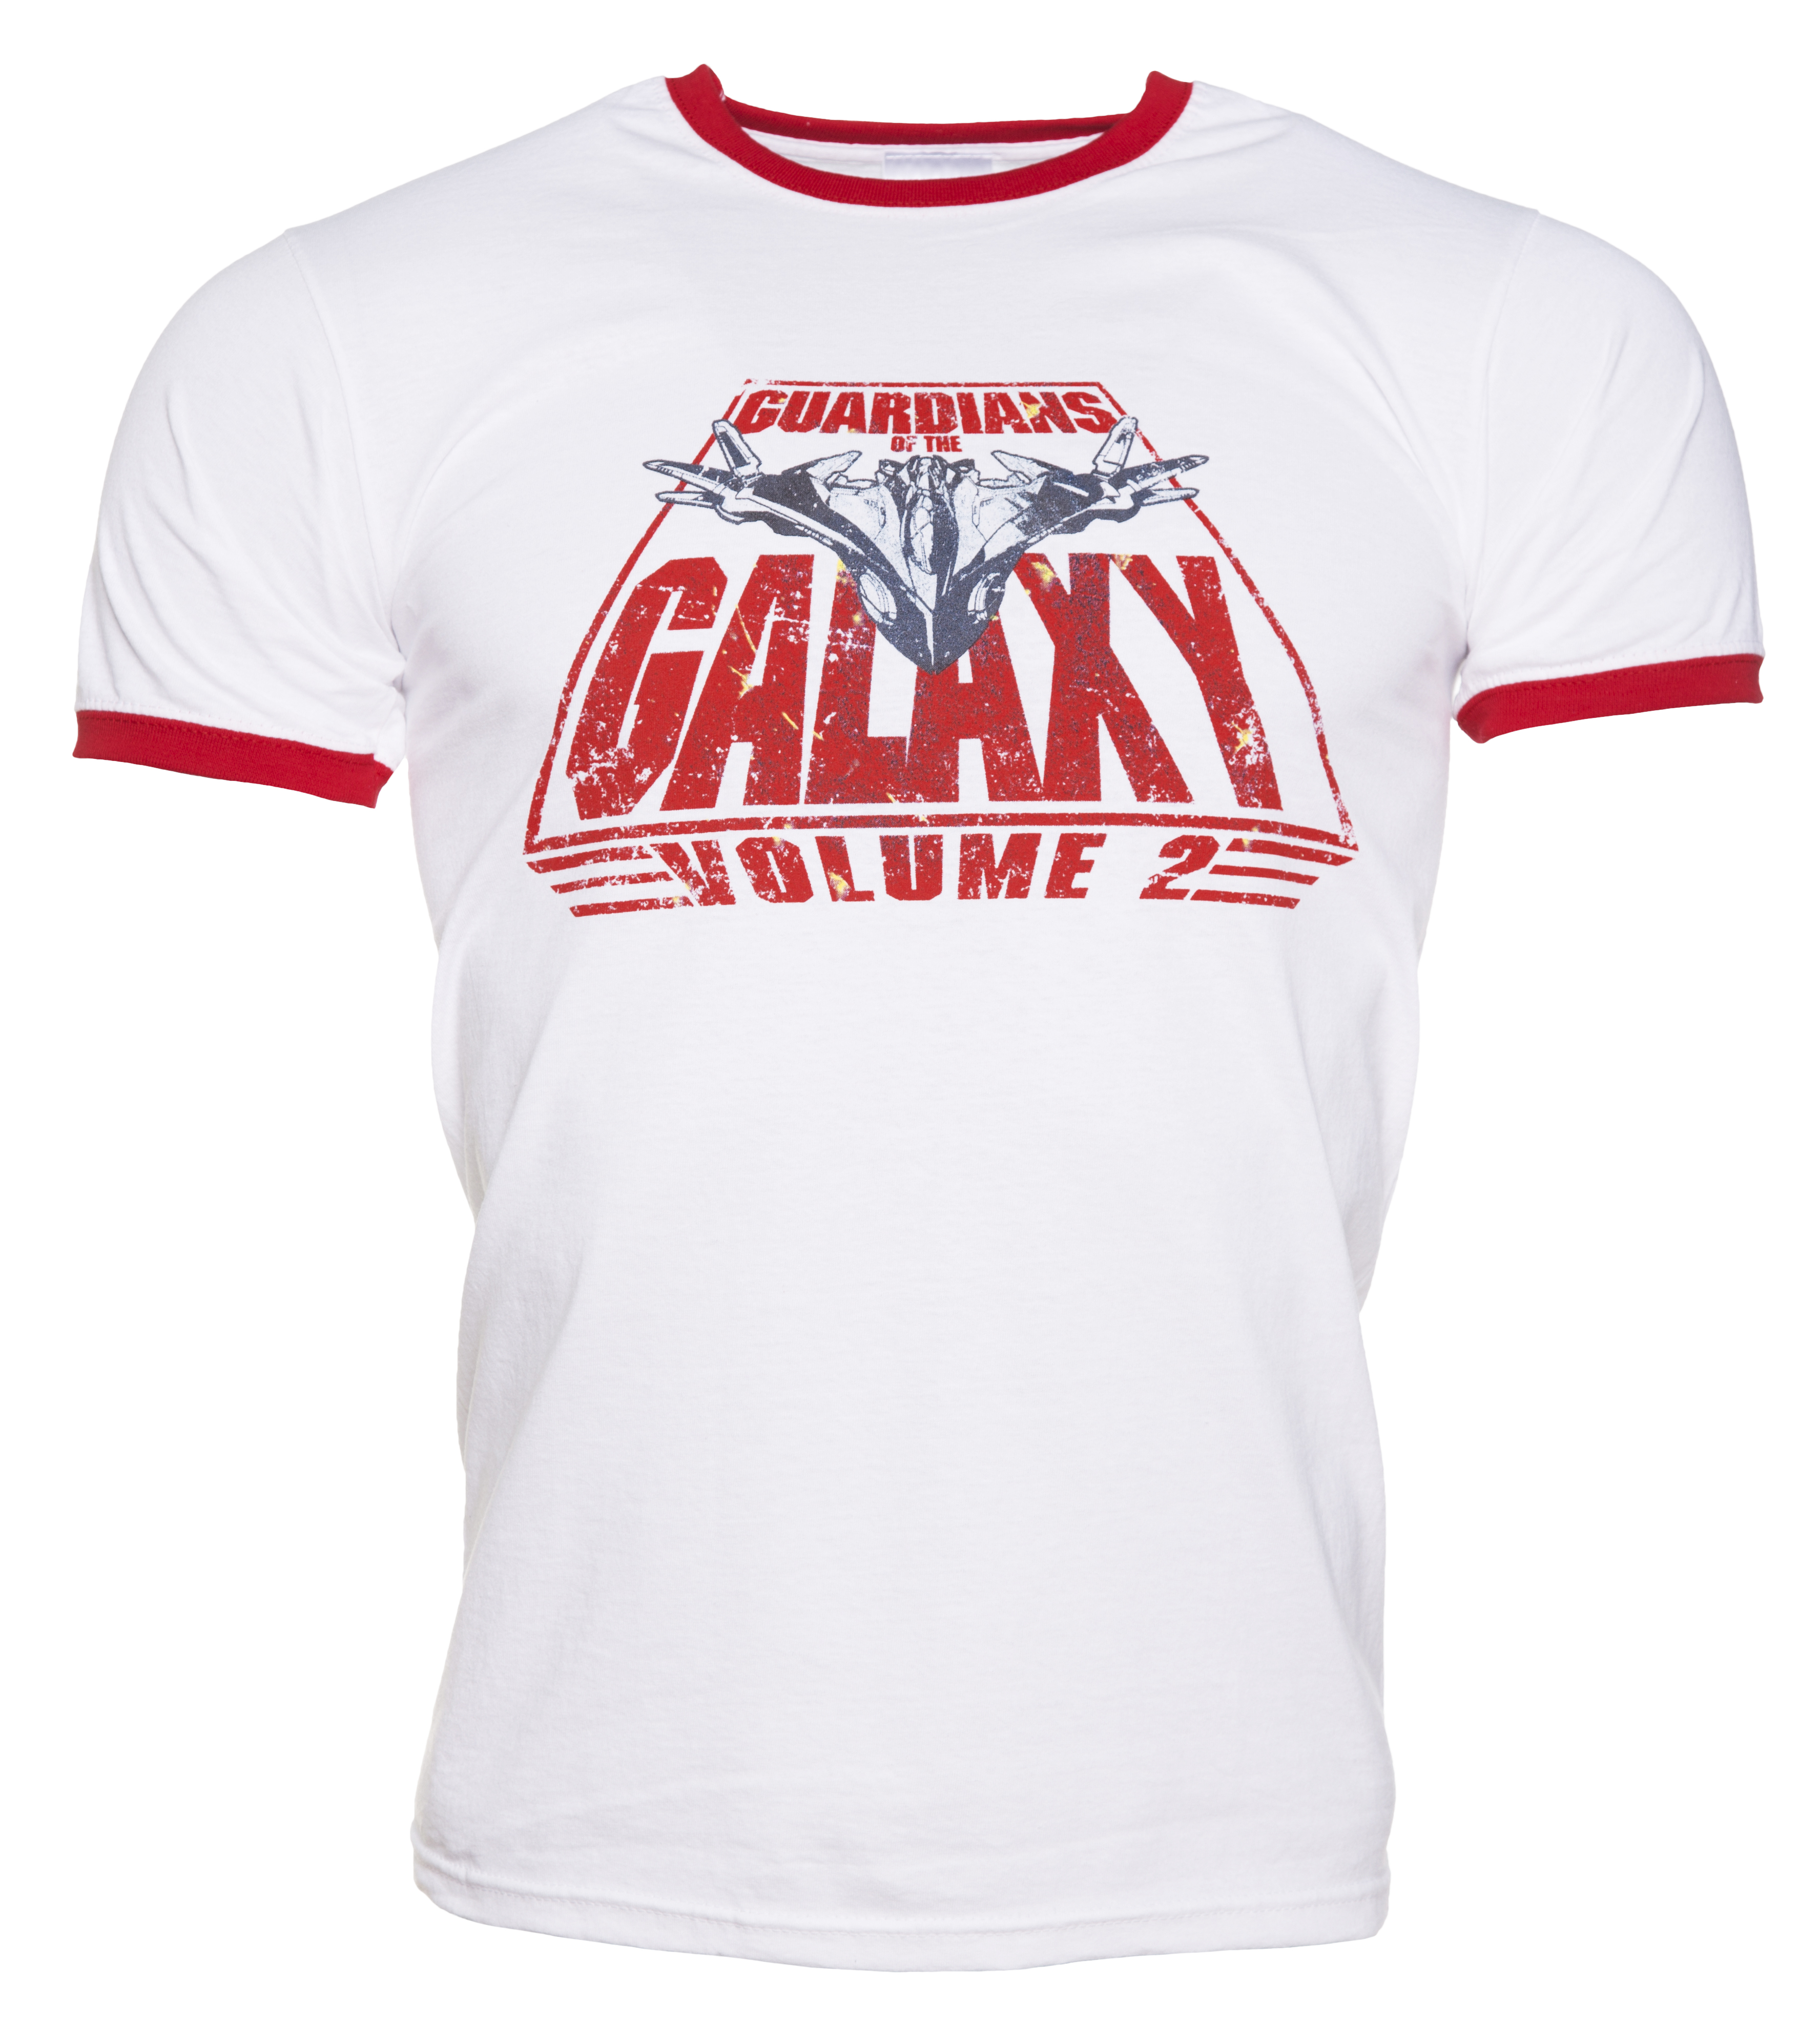 Men 39 s white retro guardians of the galaxy volume 2 logo for Vintage t shirt company